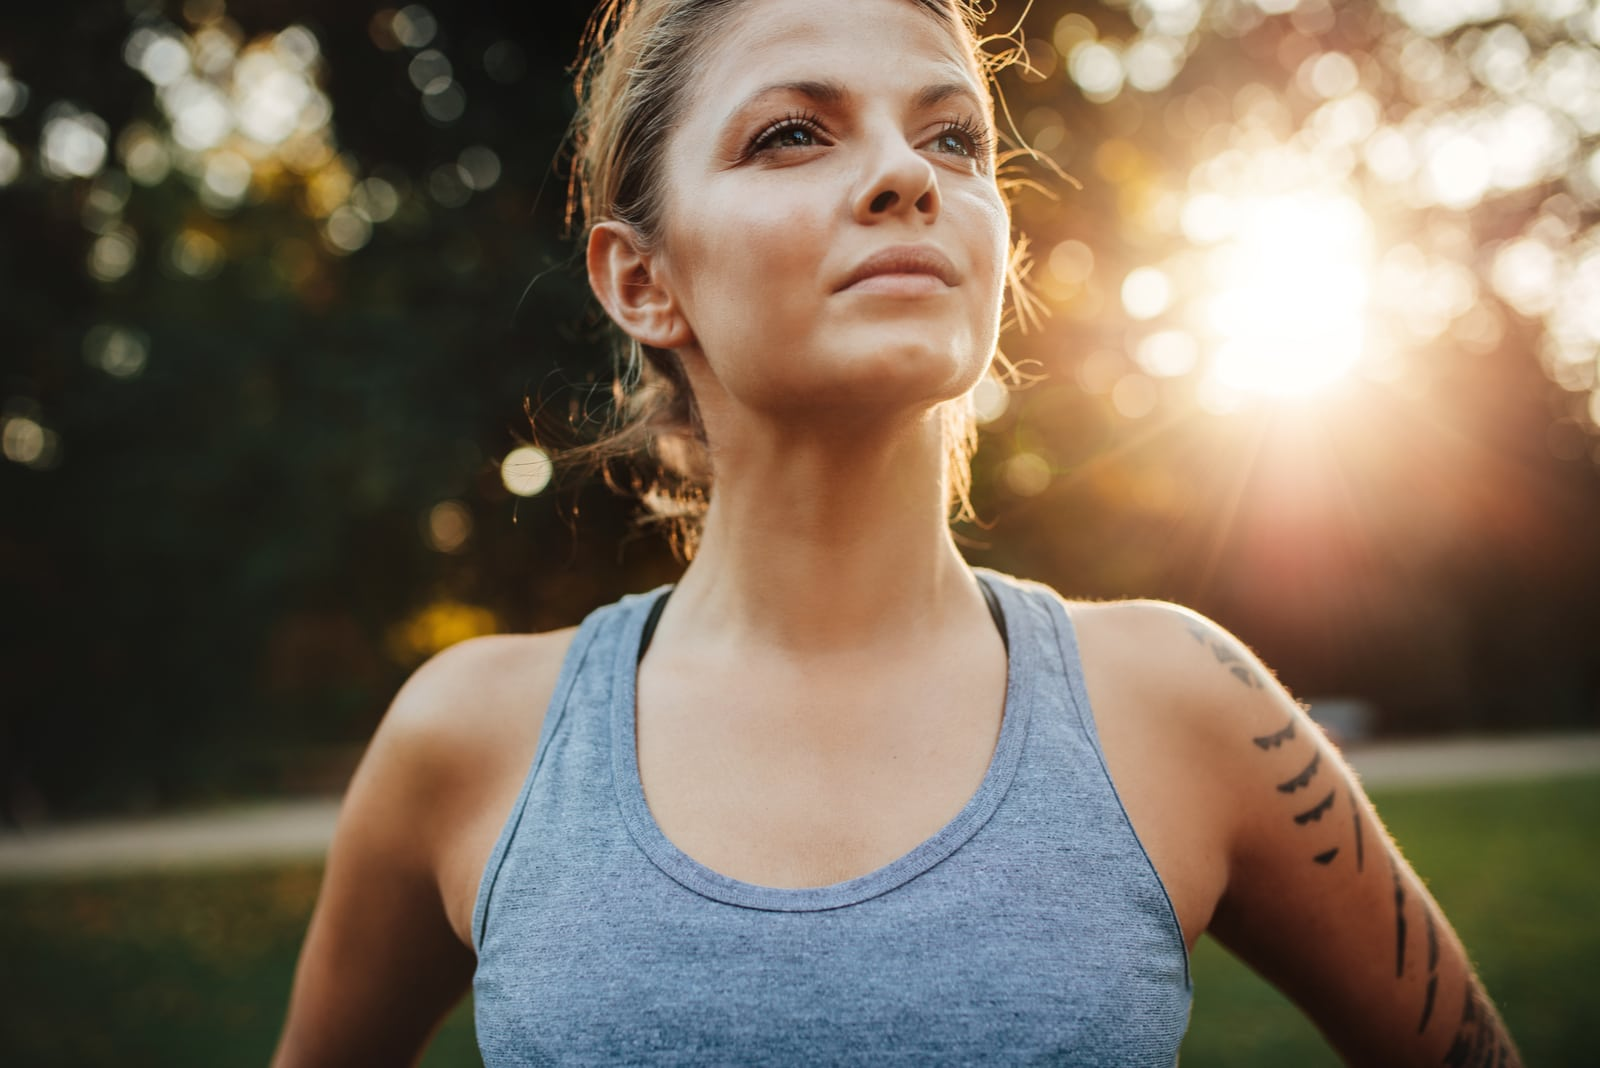 fit young woman in sportswear standing outdoors